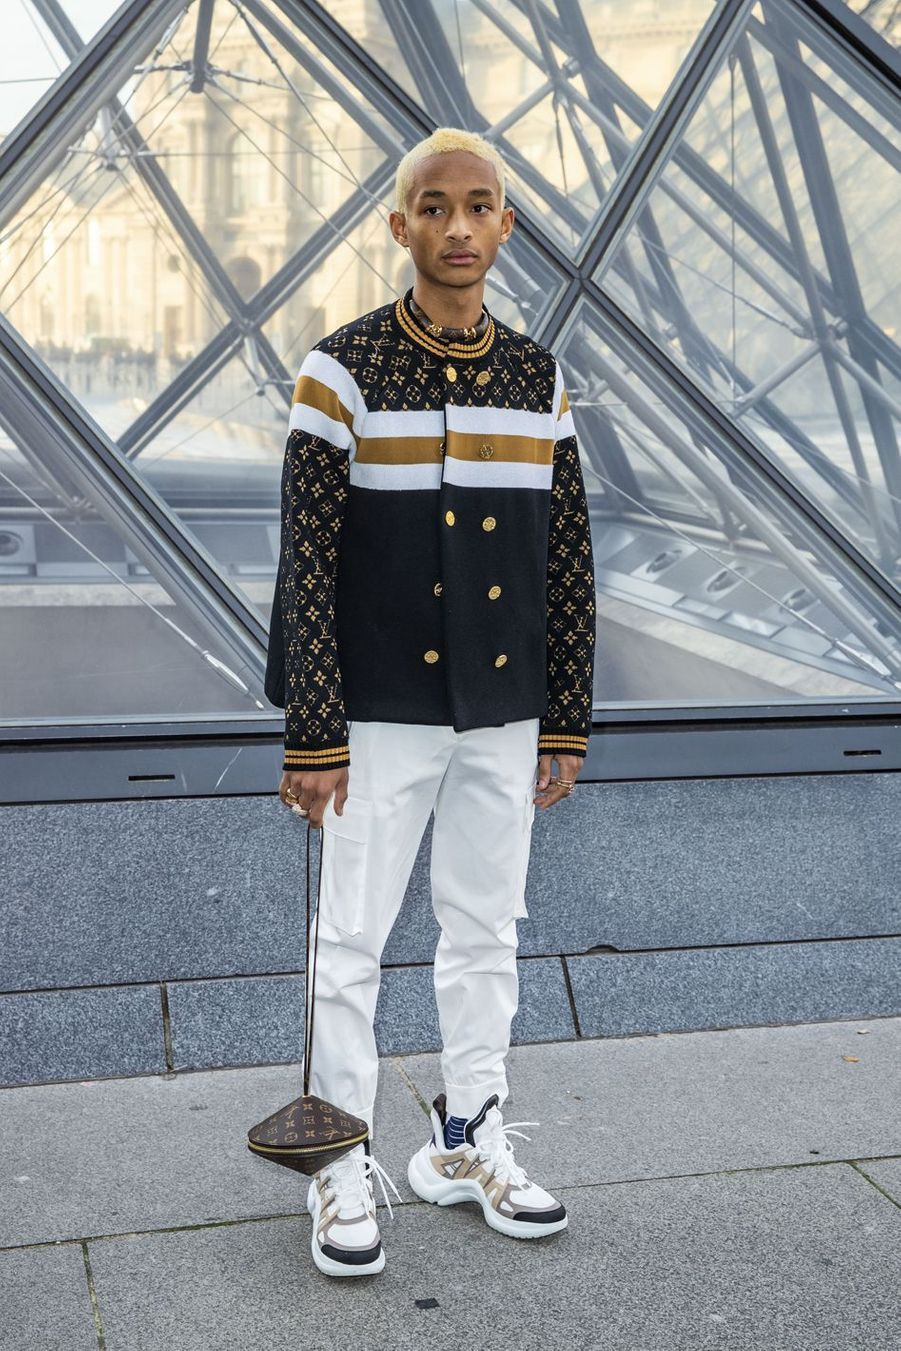 Jaden Smith au défilé Louis Vuitton à Paris, le 5 mars 2019